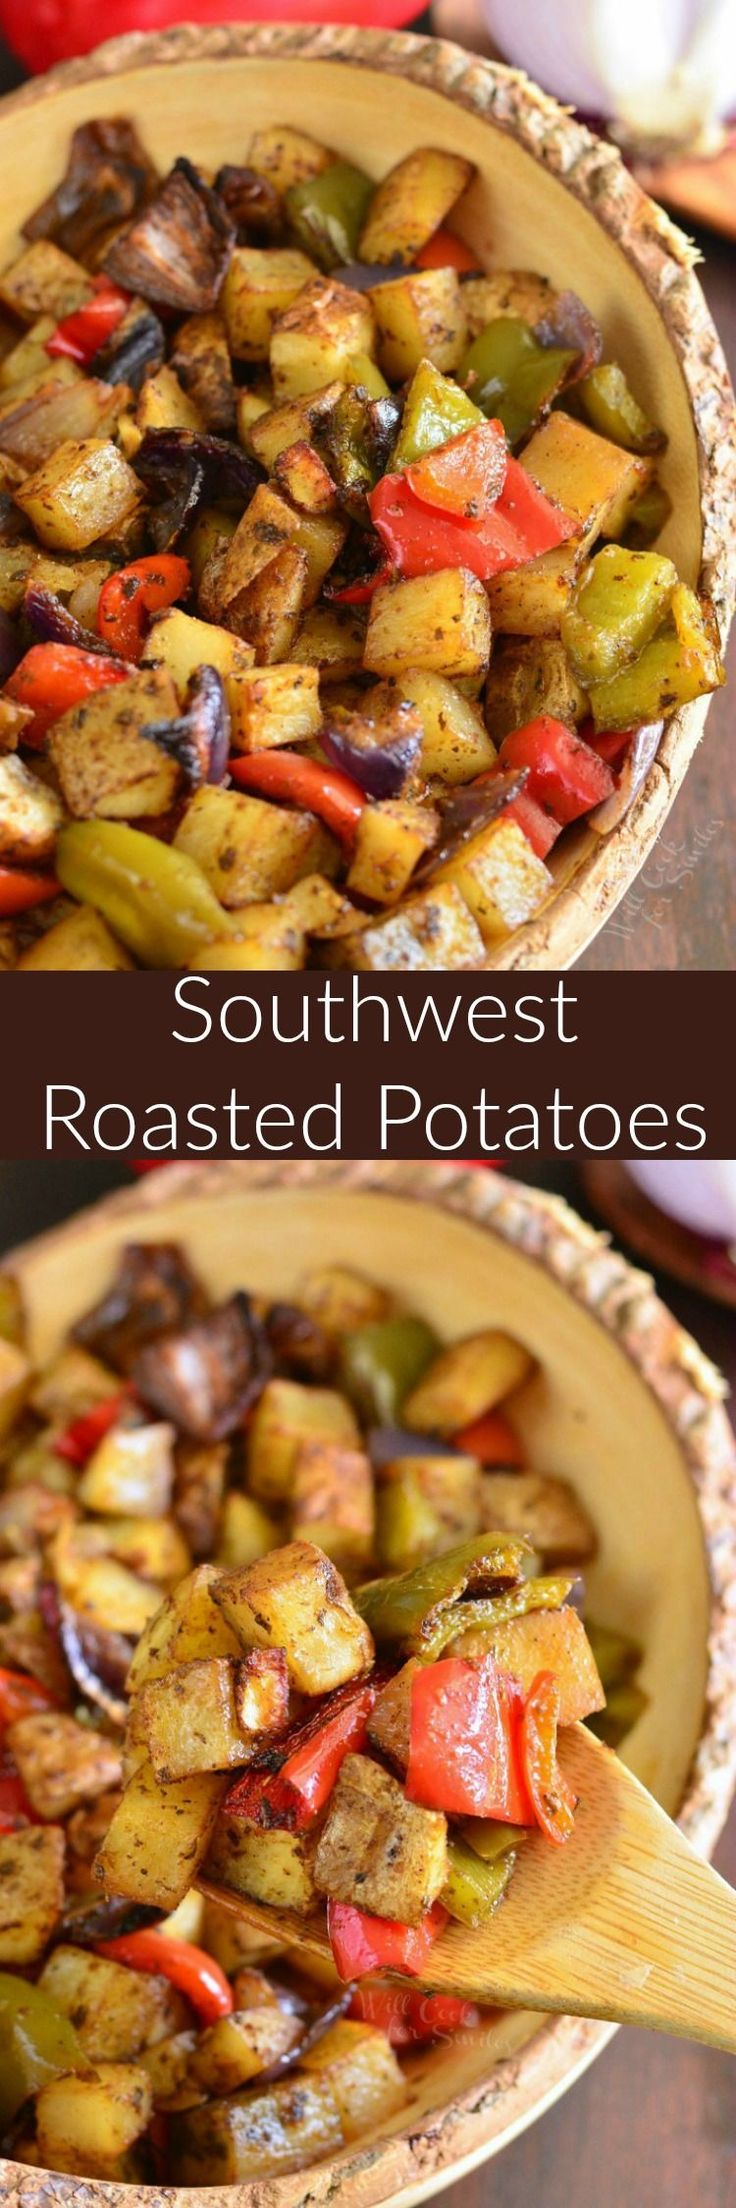 Southwest Roasted Potatoes. These roasted potatoes also have red onion and bell peppers added to them and are beautifully spiced with a southwest spice blend. (Whole Chicken And Potatoes)